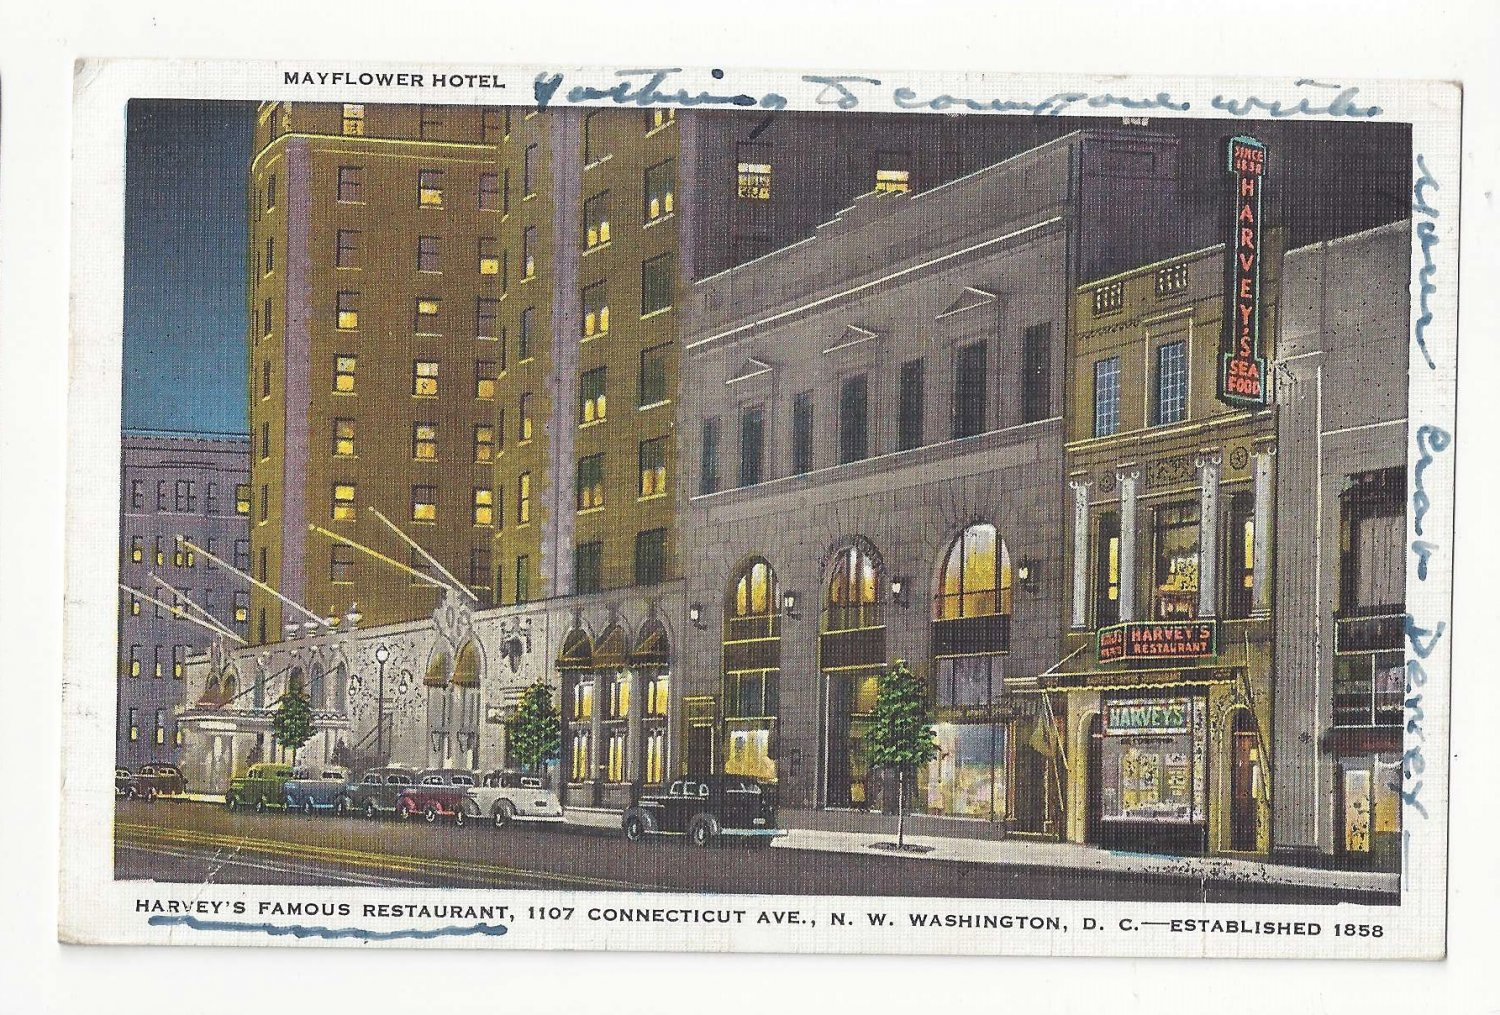 Washington D.C. Mayflower Hotel Harvey's Famous Restaurant Vntg Postcard